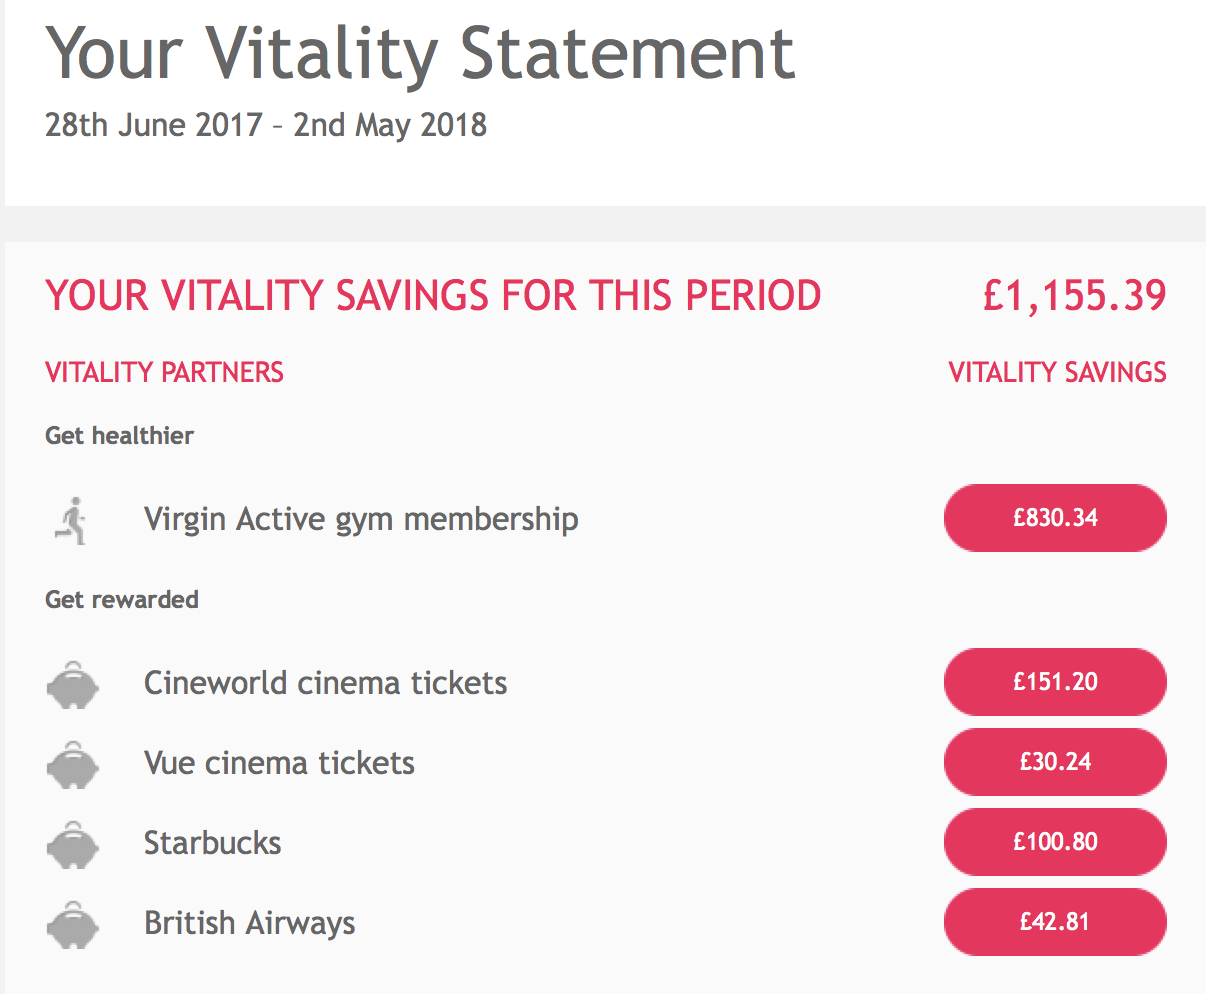 Is Vitality insurance worth it? Vitality awards statement